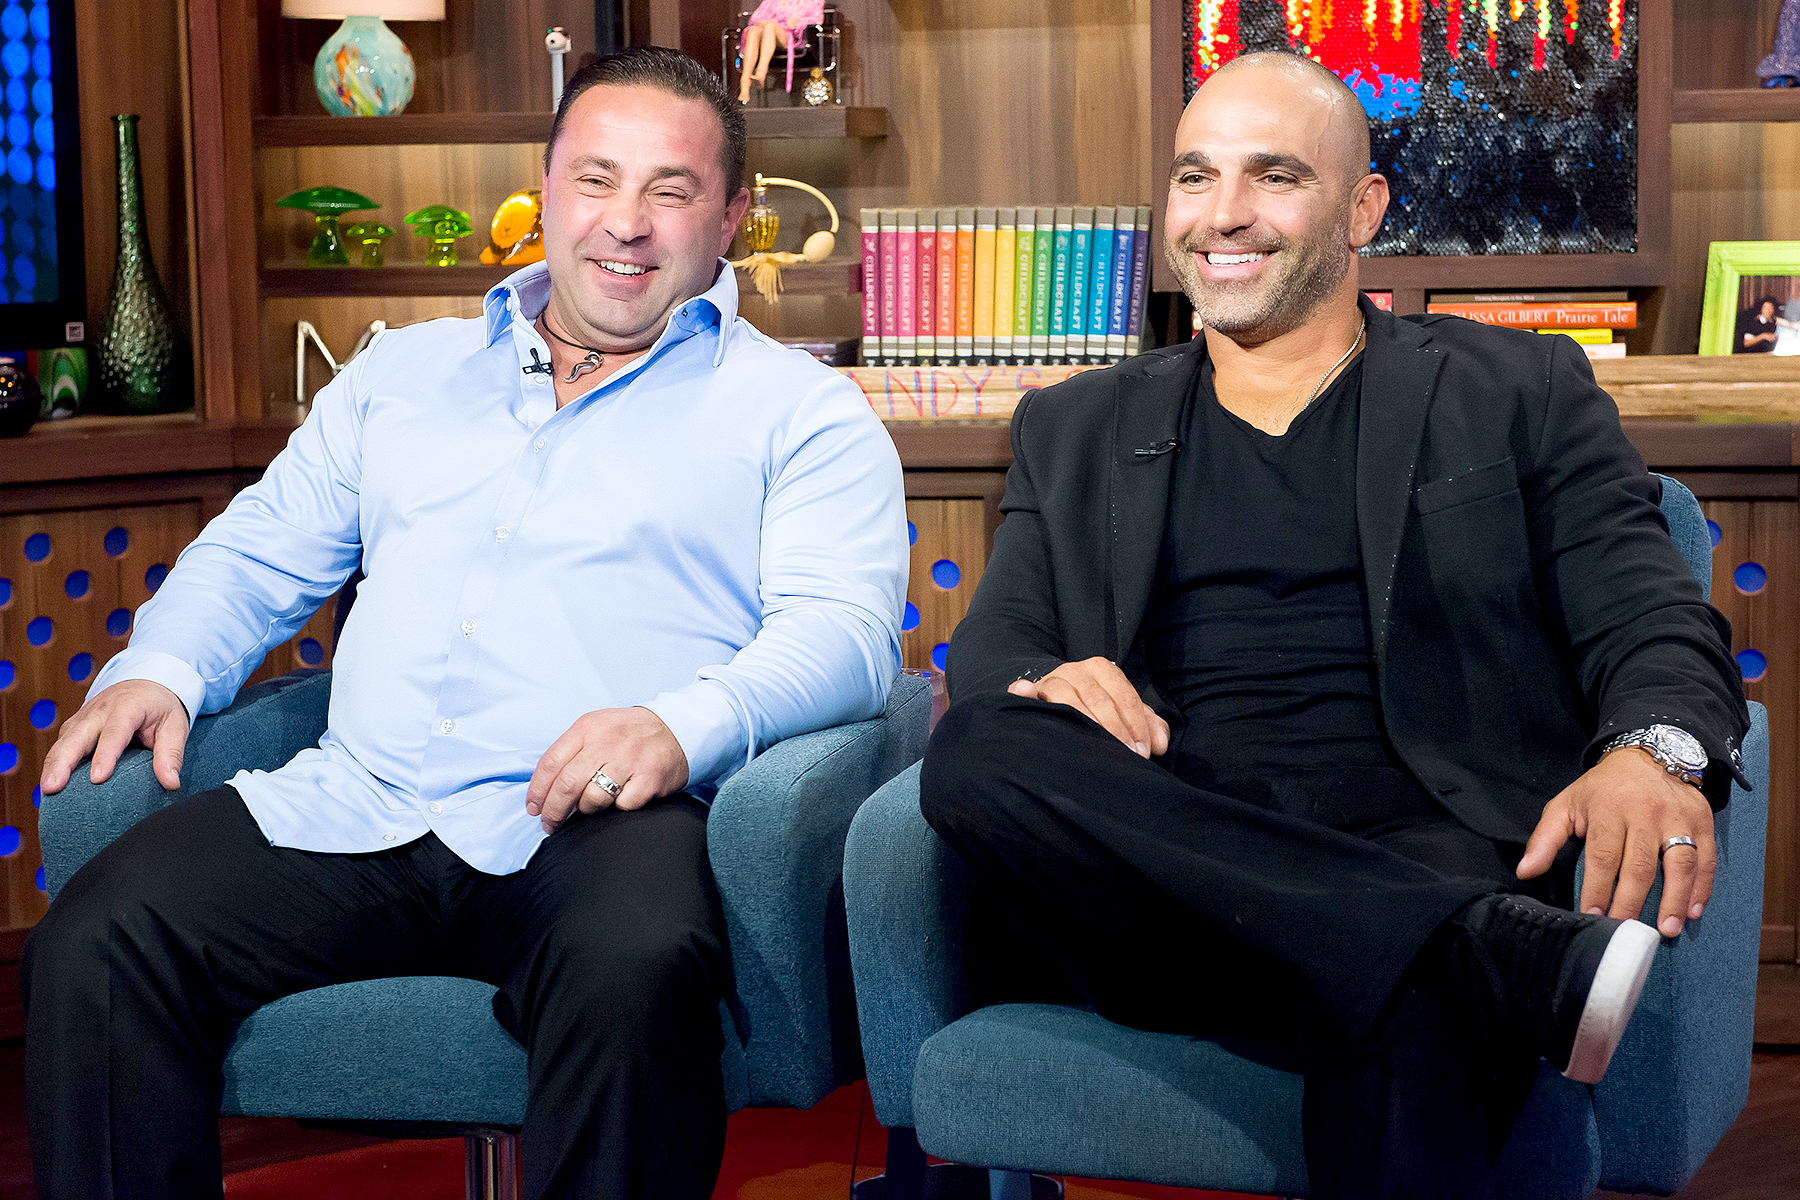 Joe Giudice and Joe Gorga in 2015.